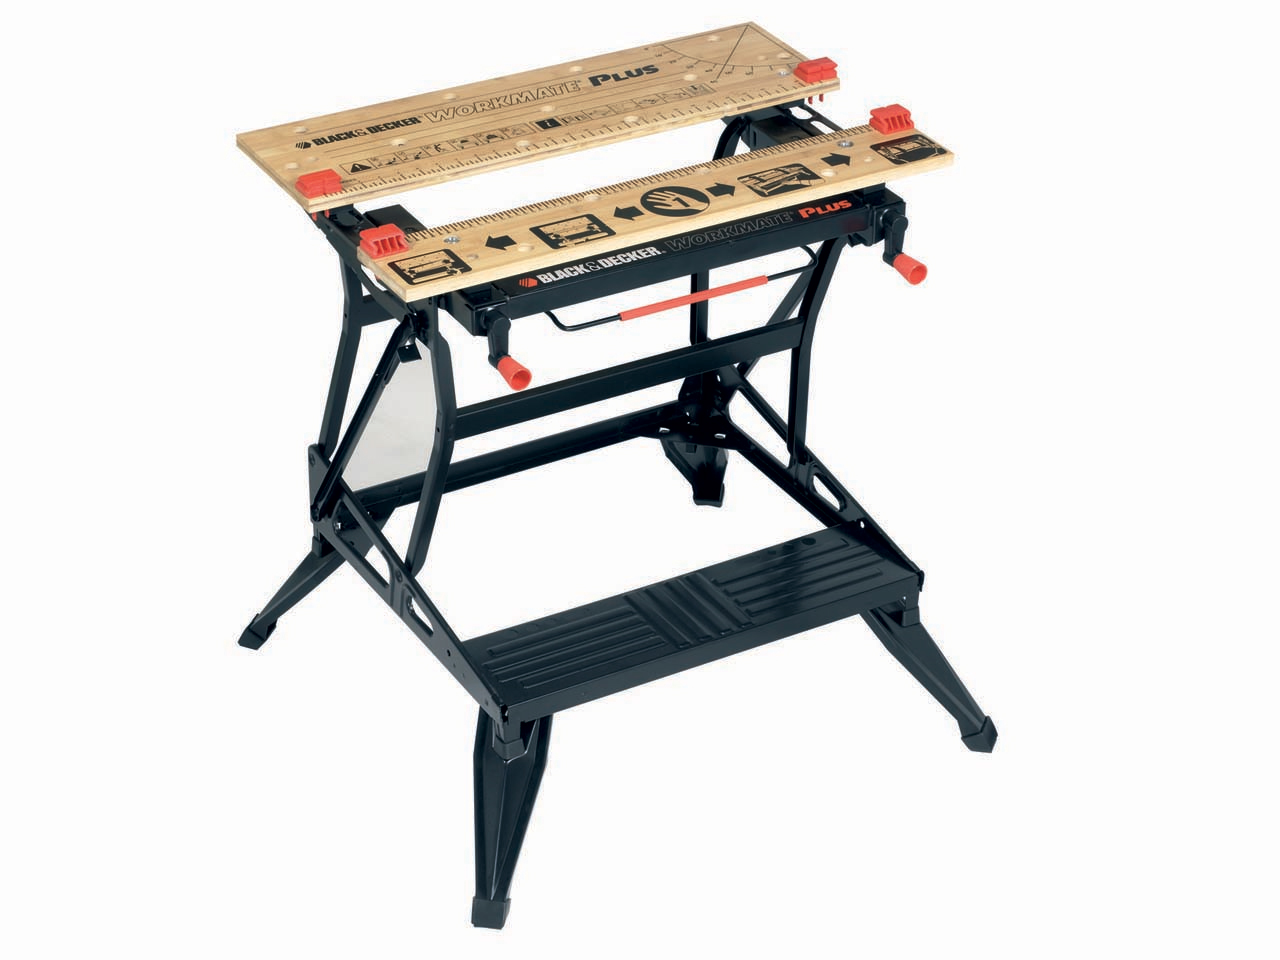 Black & Decker B/DWM825 WM825 Dual Height Deluxe Workmate